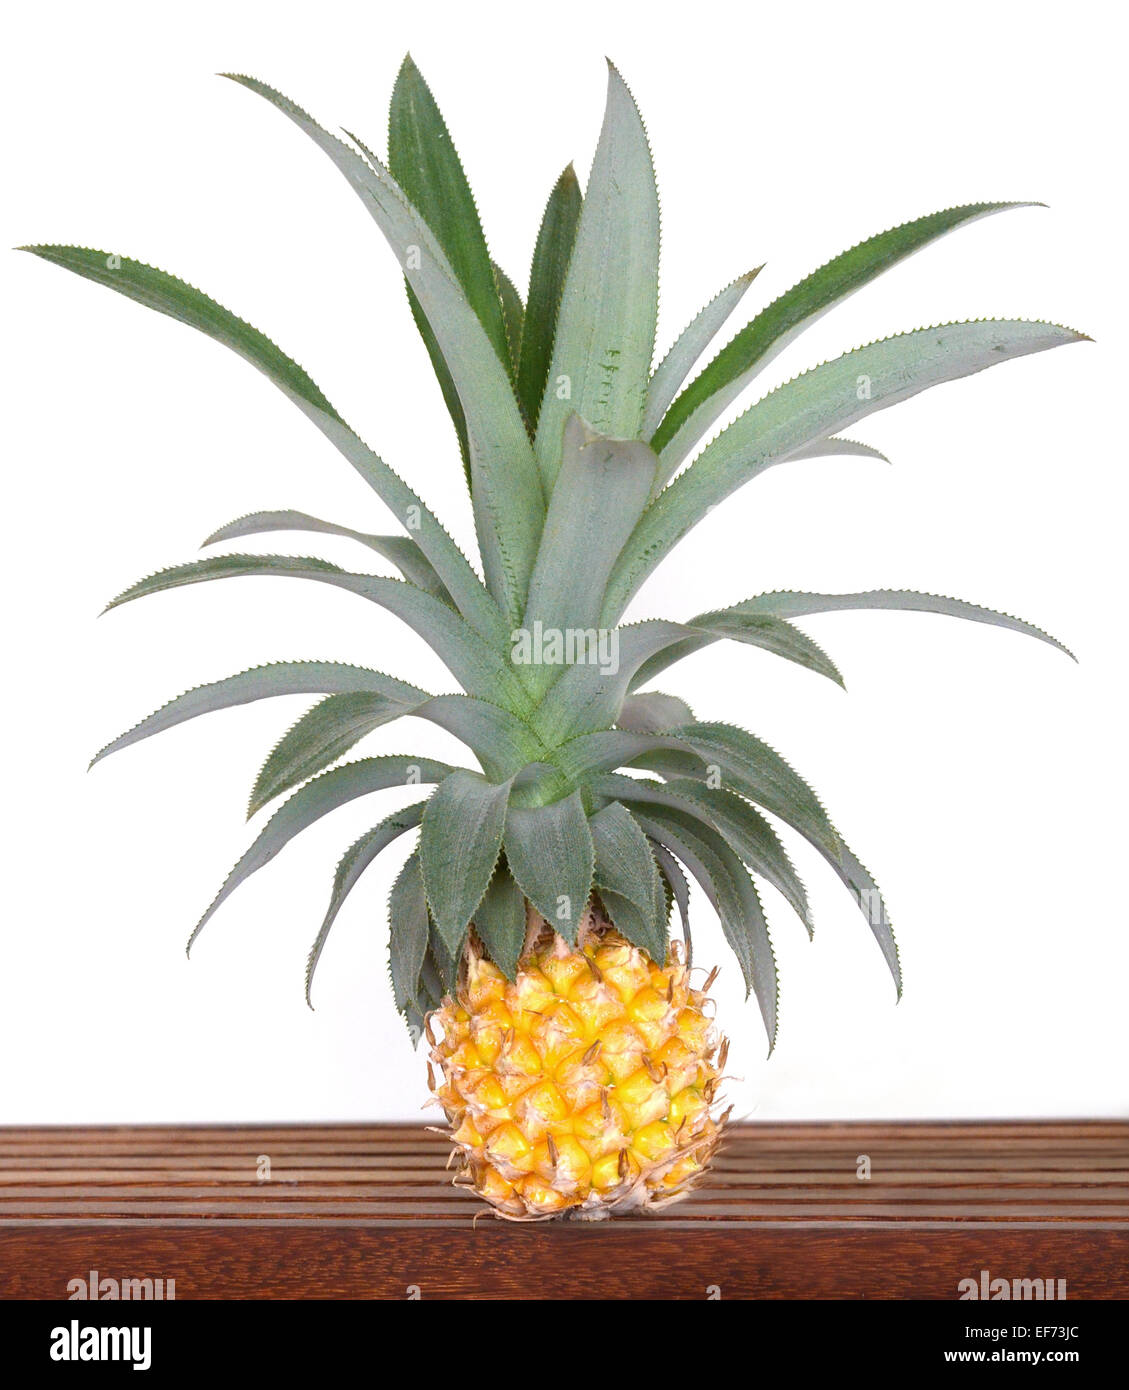 Small pineapple from Reunion island (labeled Victoria) - Stock Image